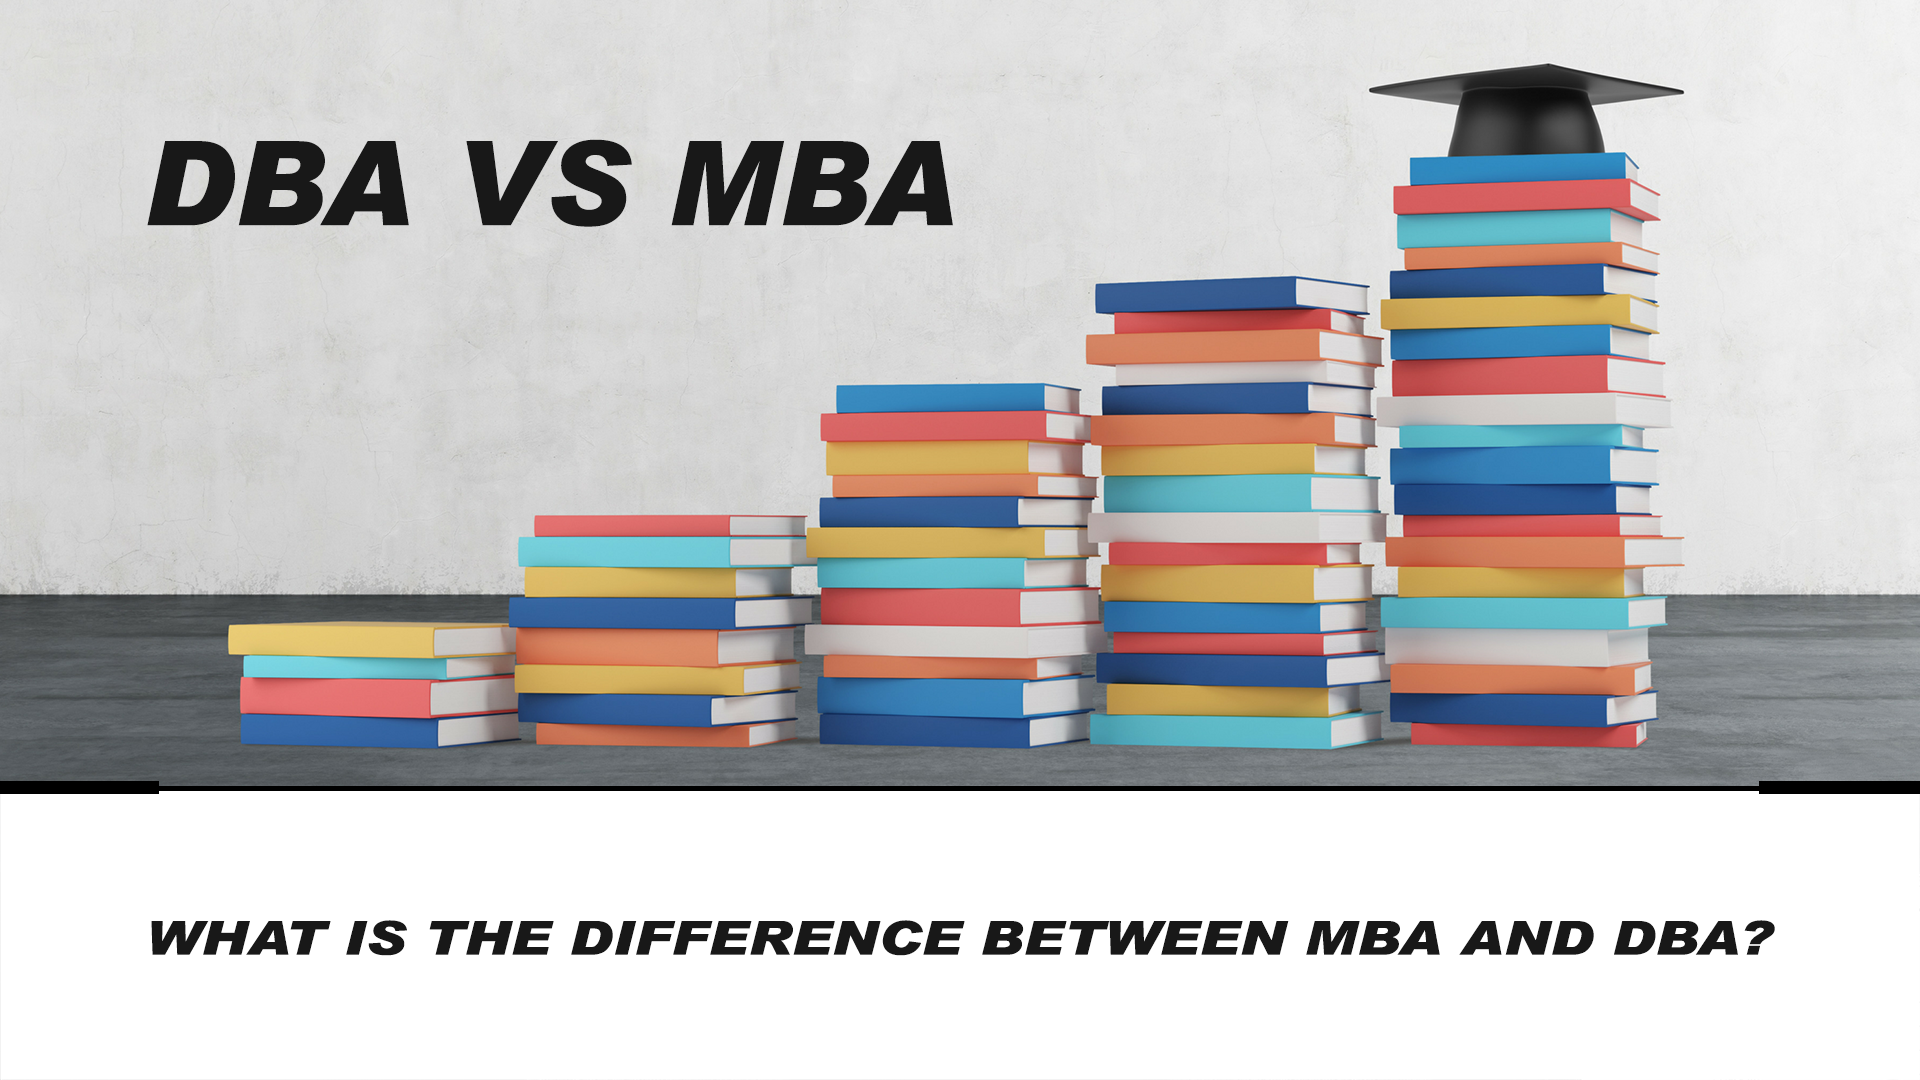 DBA vs MBA - What is the difference between MBA and DBA?